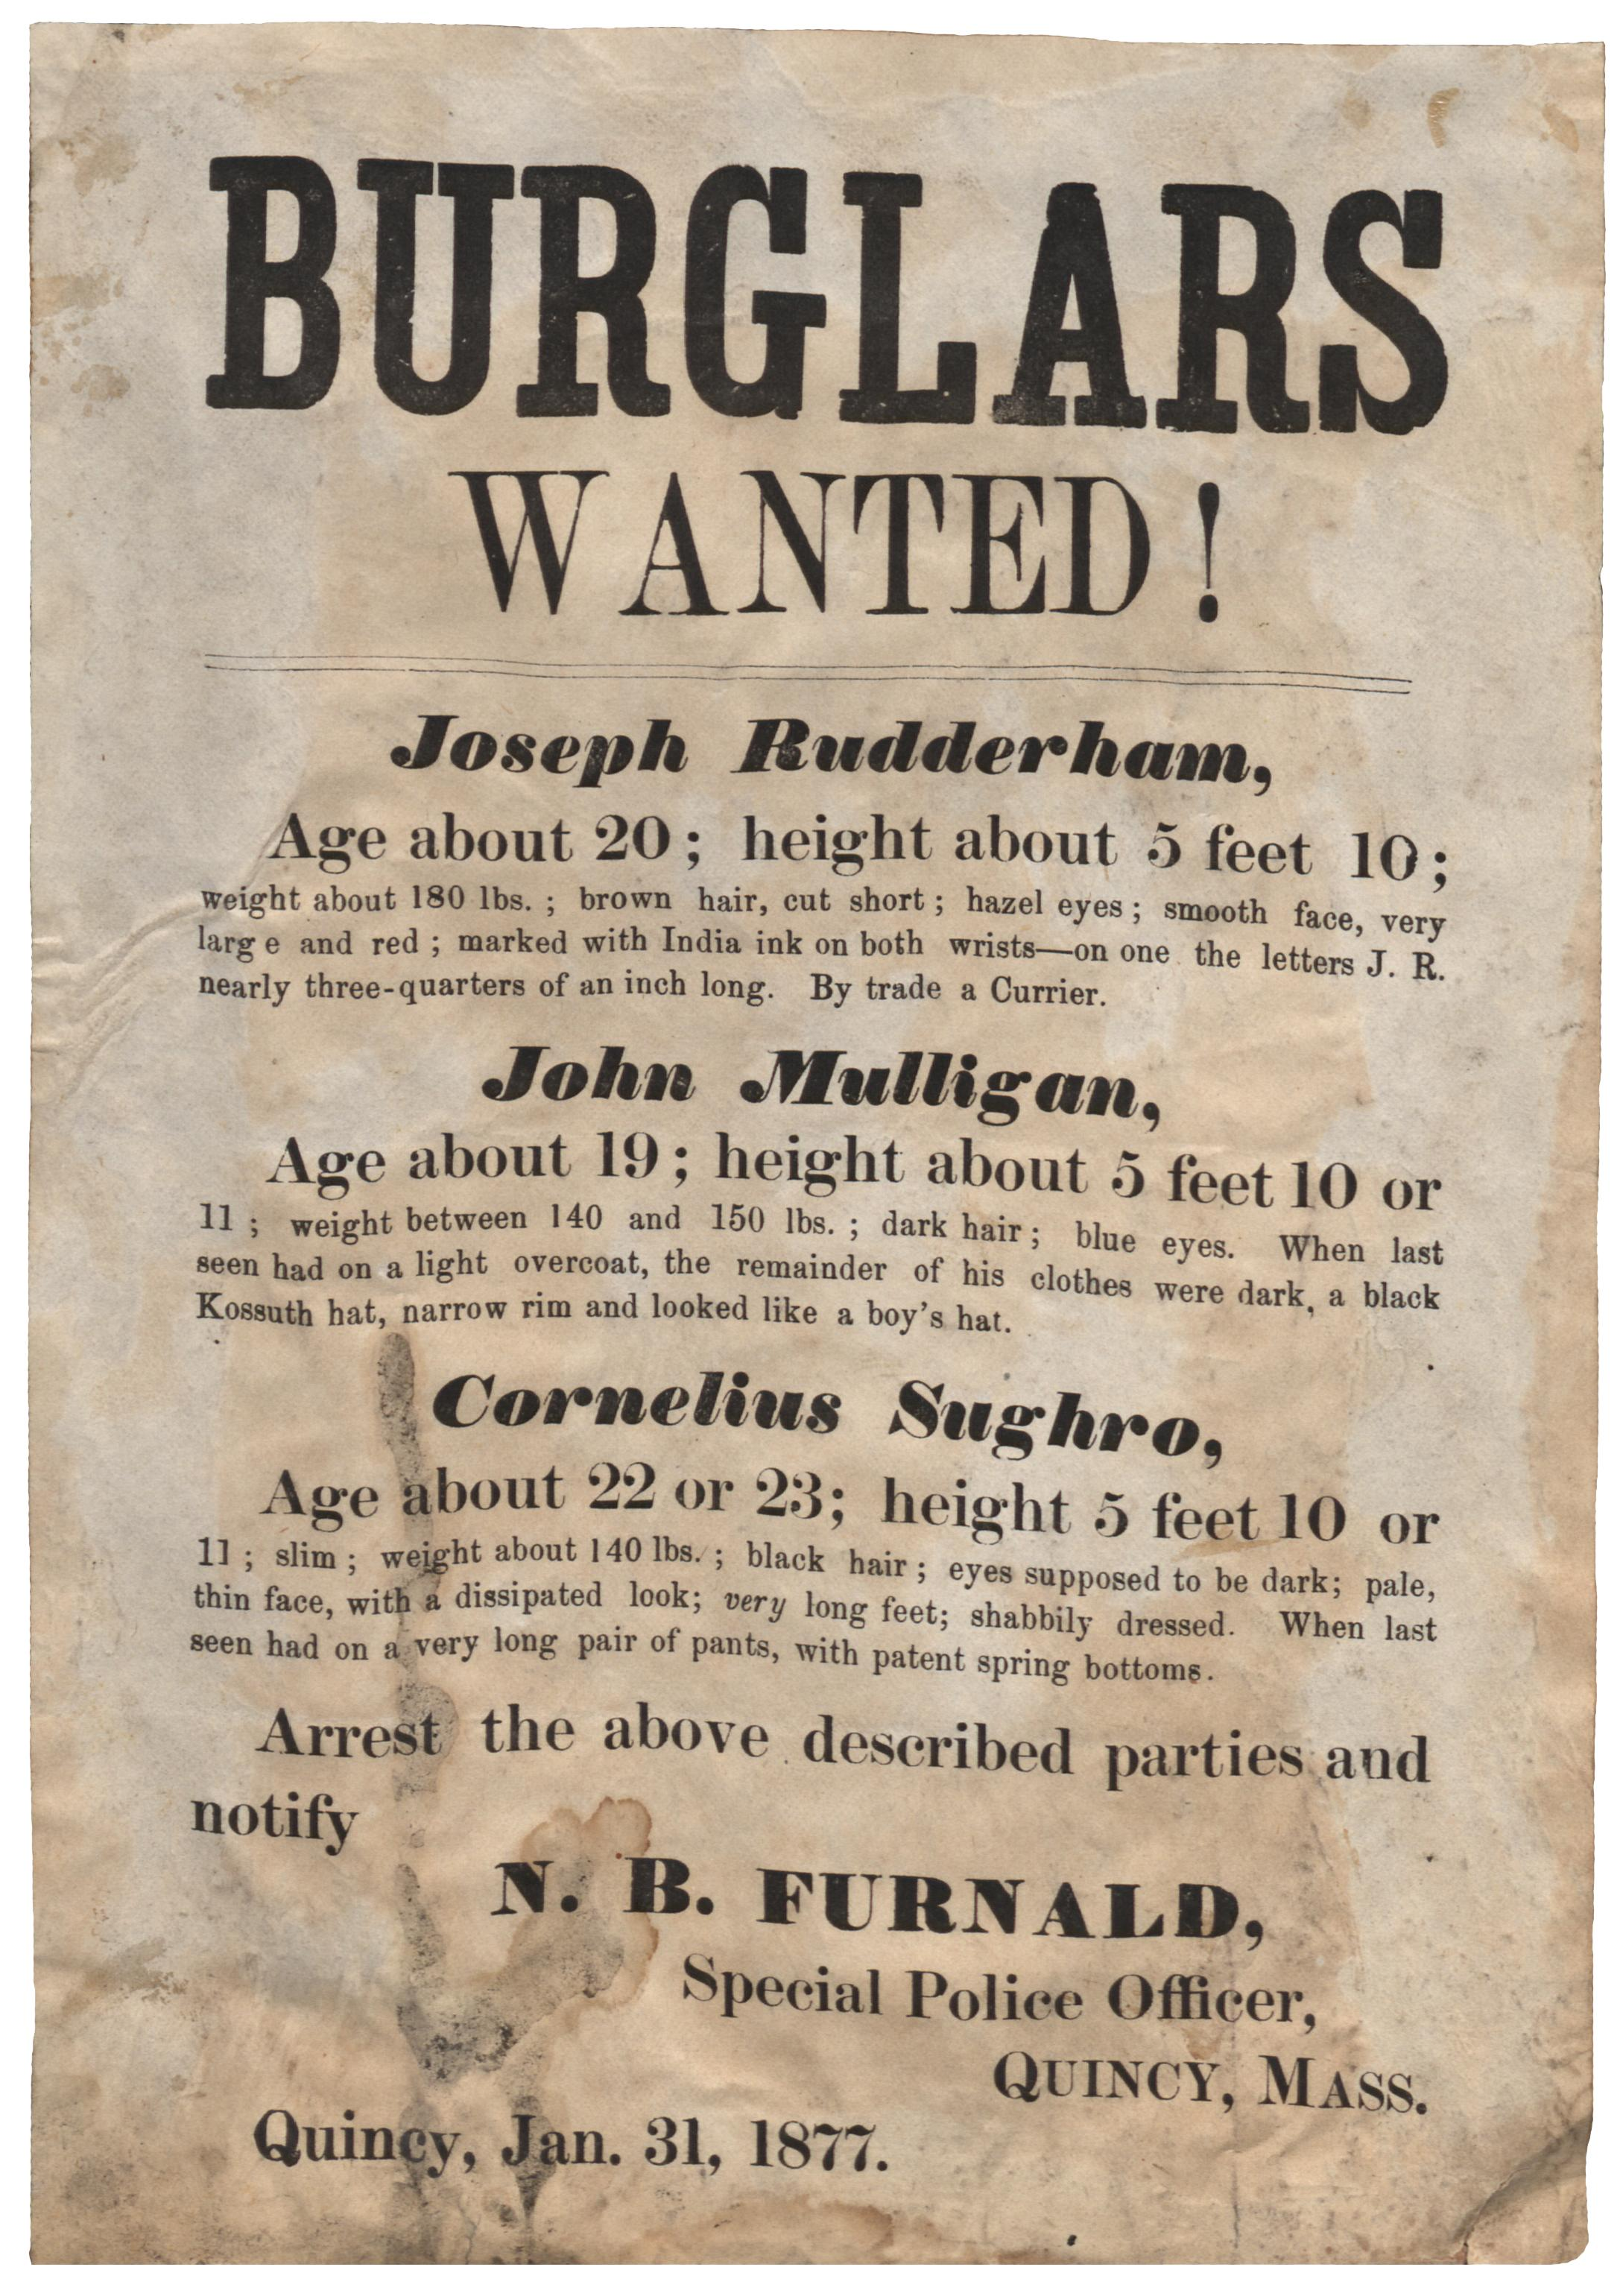 File:BURGLARS WANTED! (7976733112).jpg - Wikimedia Commons